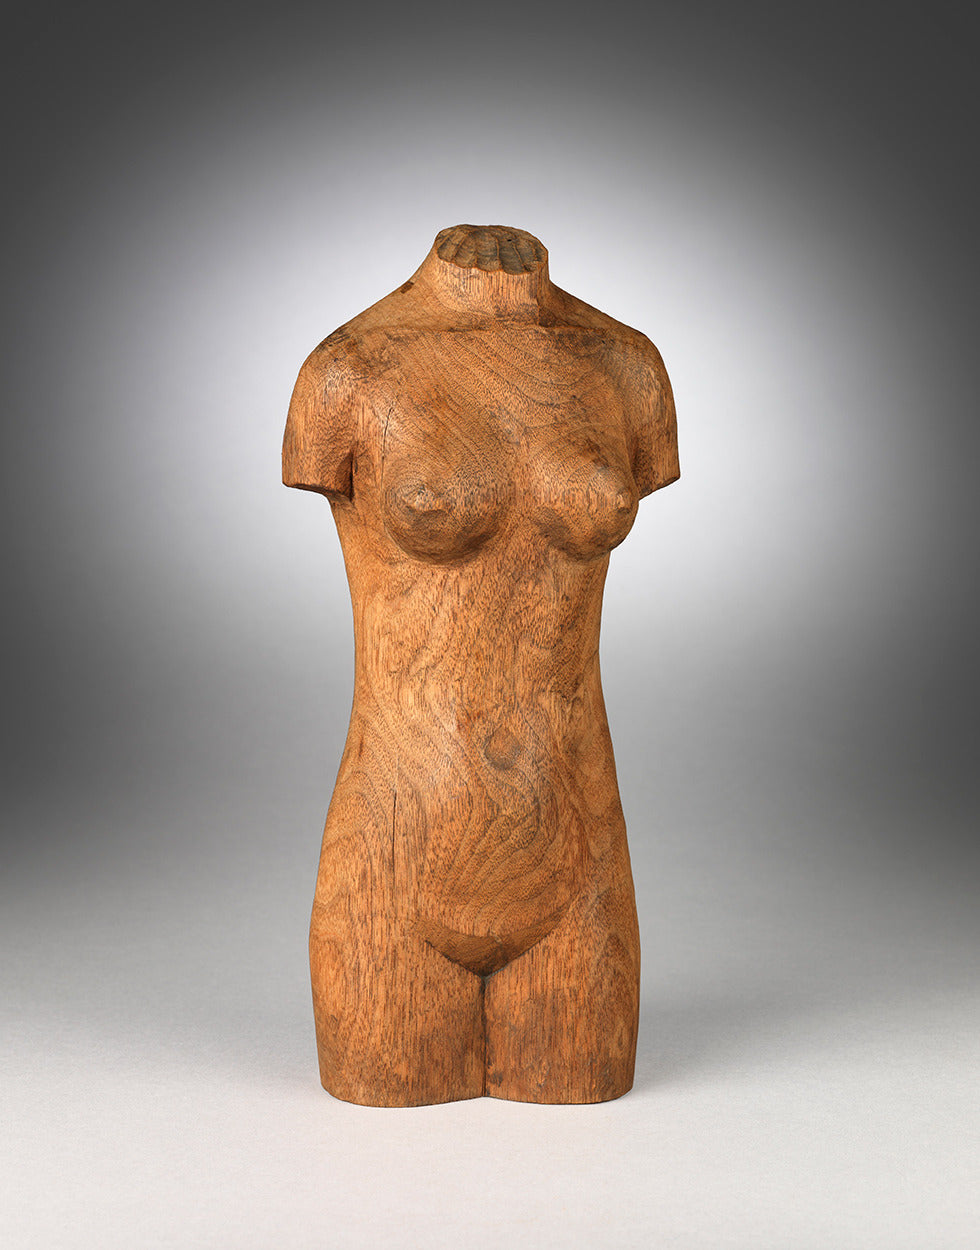 Primitive Folk Art Sculpture of a Naked Female Torso